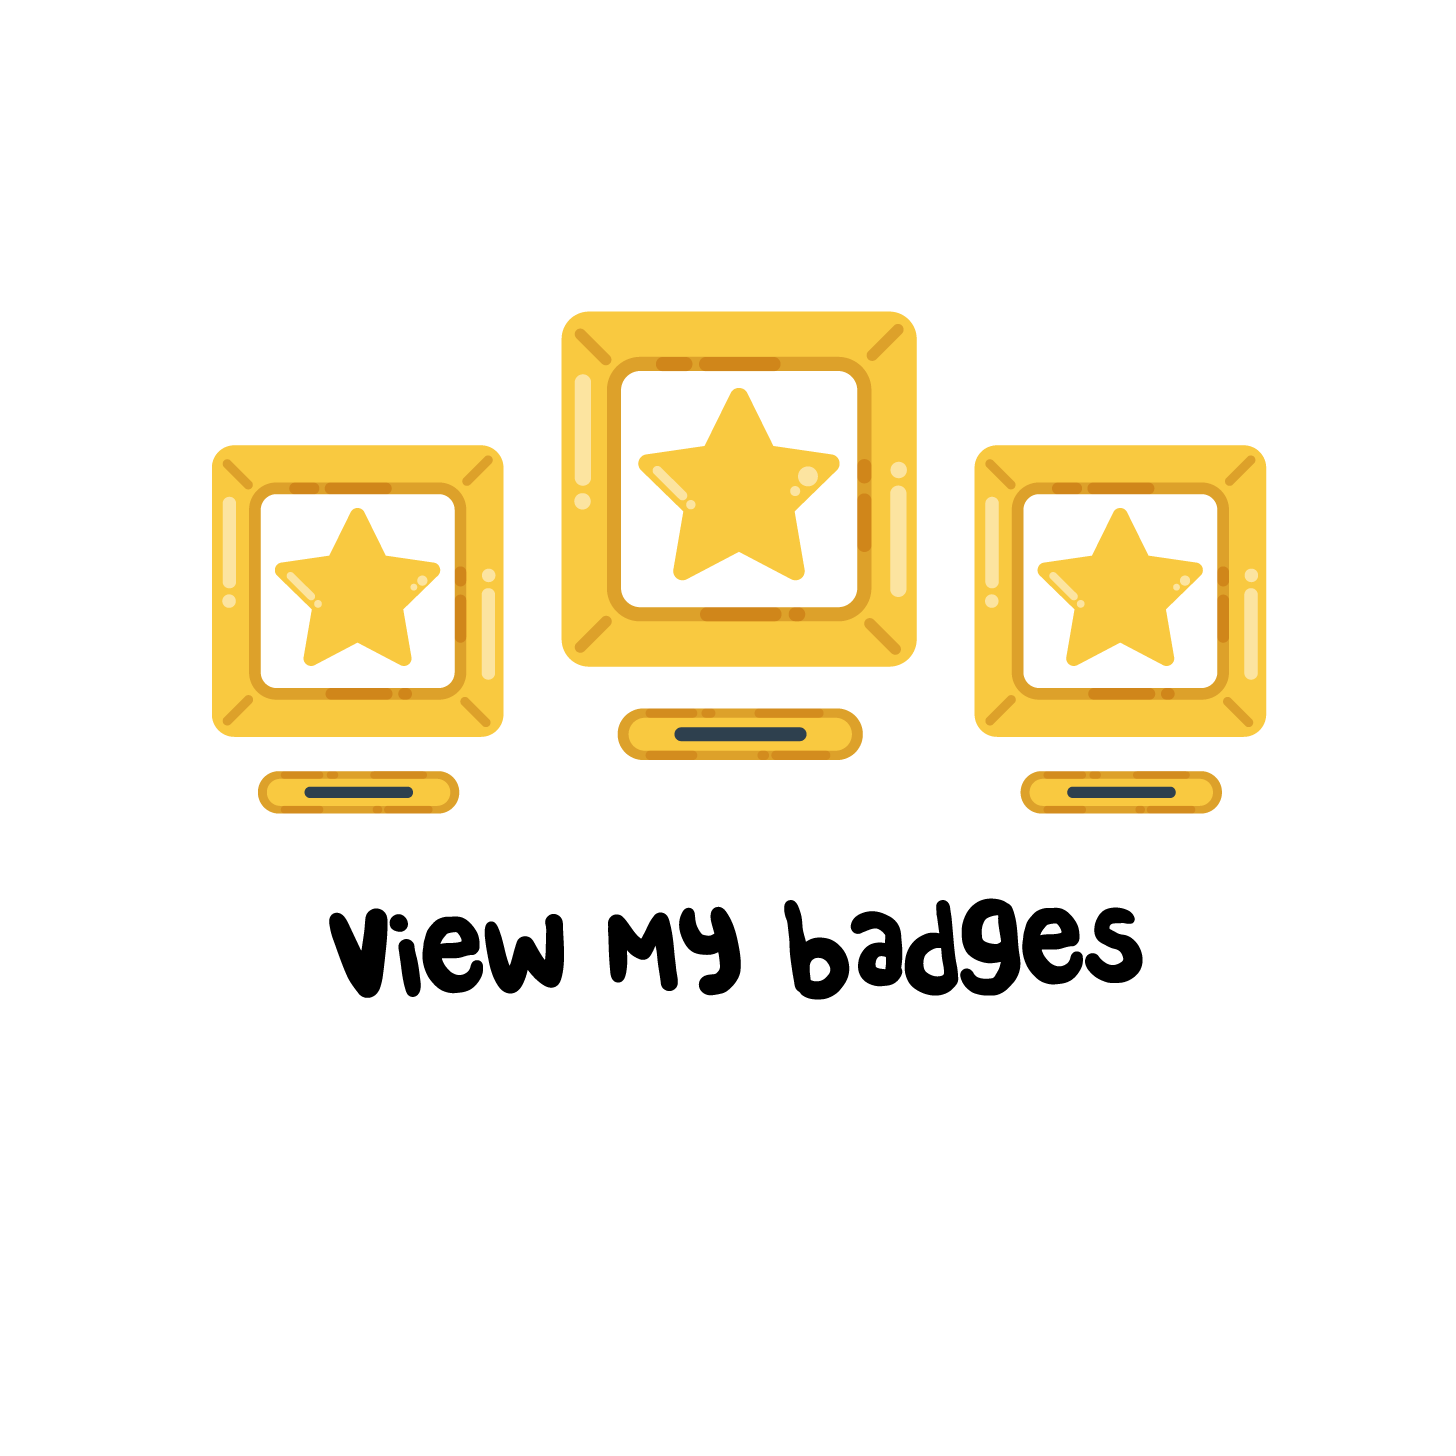 View my badges